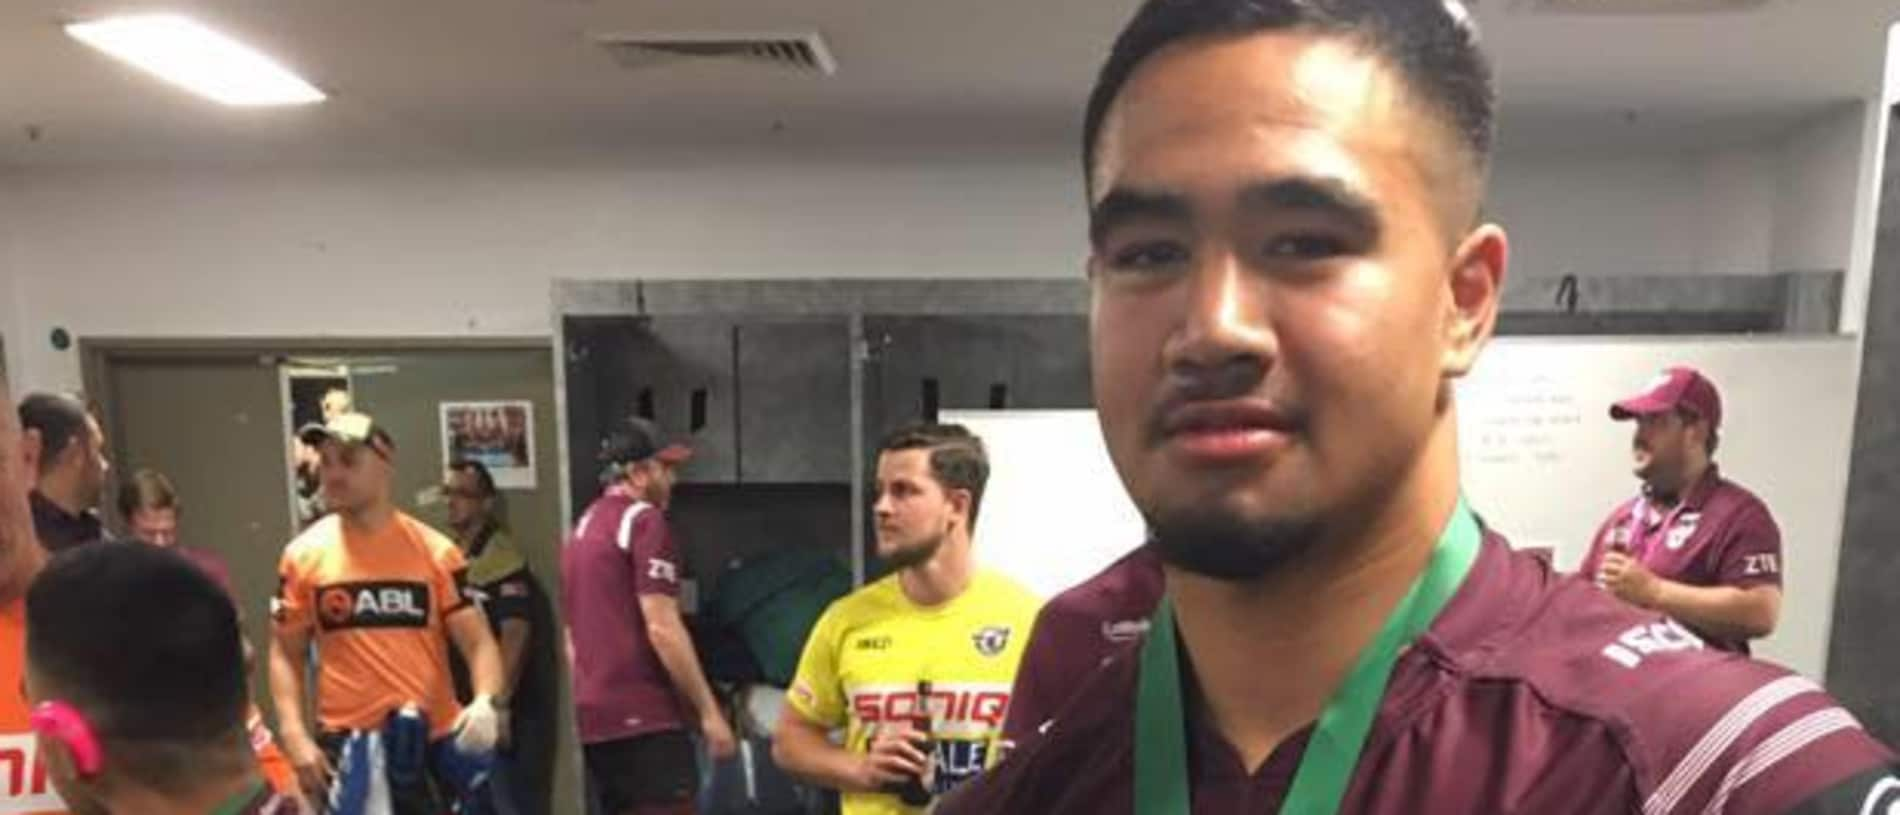 A Facebook post from Keith Titmuss after winning the 2017 Holden Cup U20's Grand Final. Keith collapsed and died after a pre-season training session for his Manly-Warringah NRL club on Monday. Source https://www.facebook.com/photo.php?fbid=1710918975605488&set=pb.100000622065822.-2207520000..&type=3